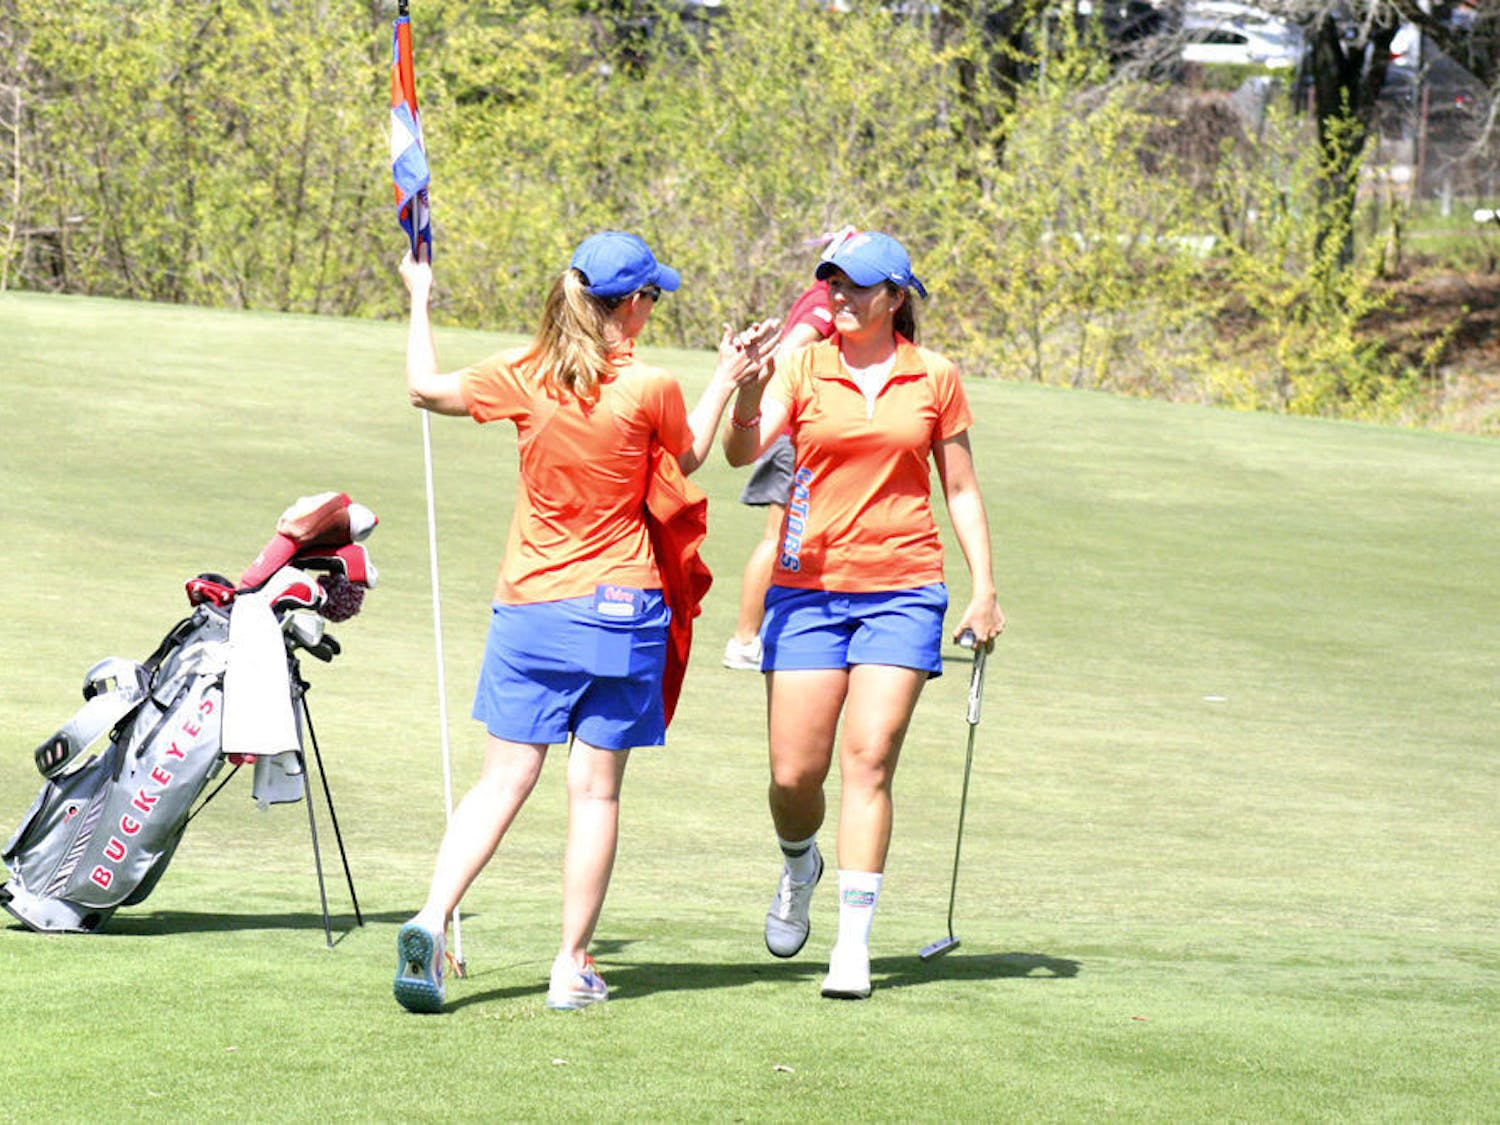 Karolina Vlckova (right) celebrates with coach Emily Glaser during the 2015 Suntrust Gator Invitational at the Mark Bostick Golf Course in Gainesville.